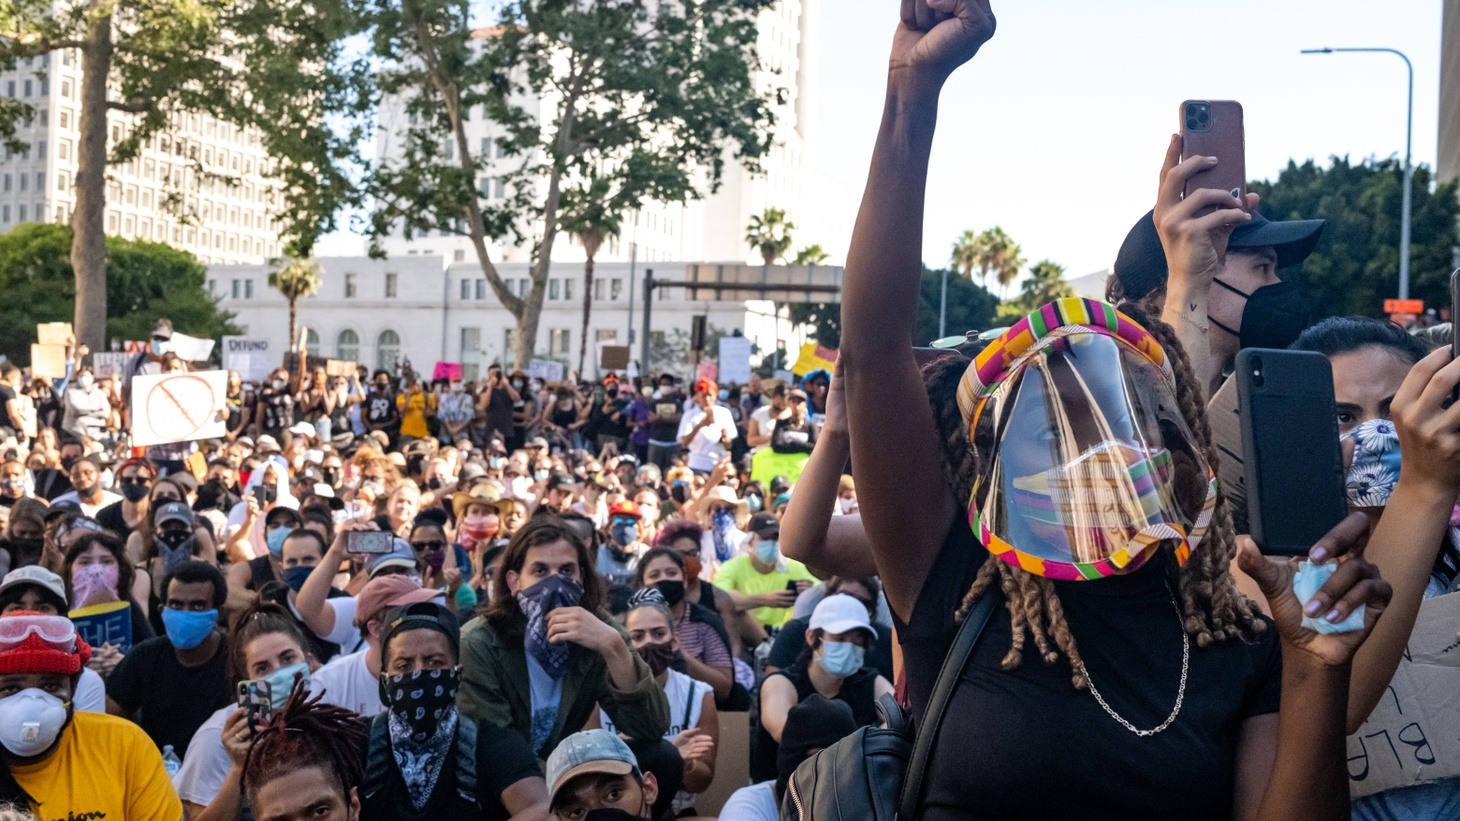 Black Lives Matter LA organized a rally in front of the LA County Hall of Justice to protest District Attorney Jackie Lacey. About 100,000 people came out — many wearing face masks — to protest police violence, the proposed LA city budget of 54% to the LAPD, and the death of George Floyd. June 3, 2020.